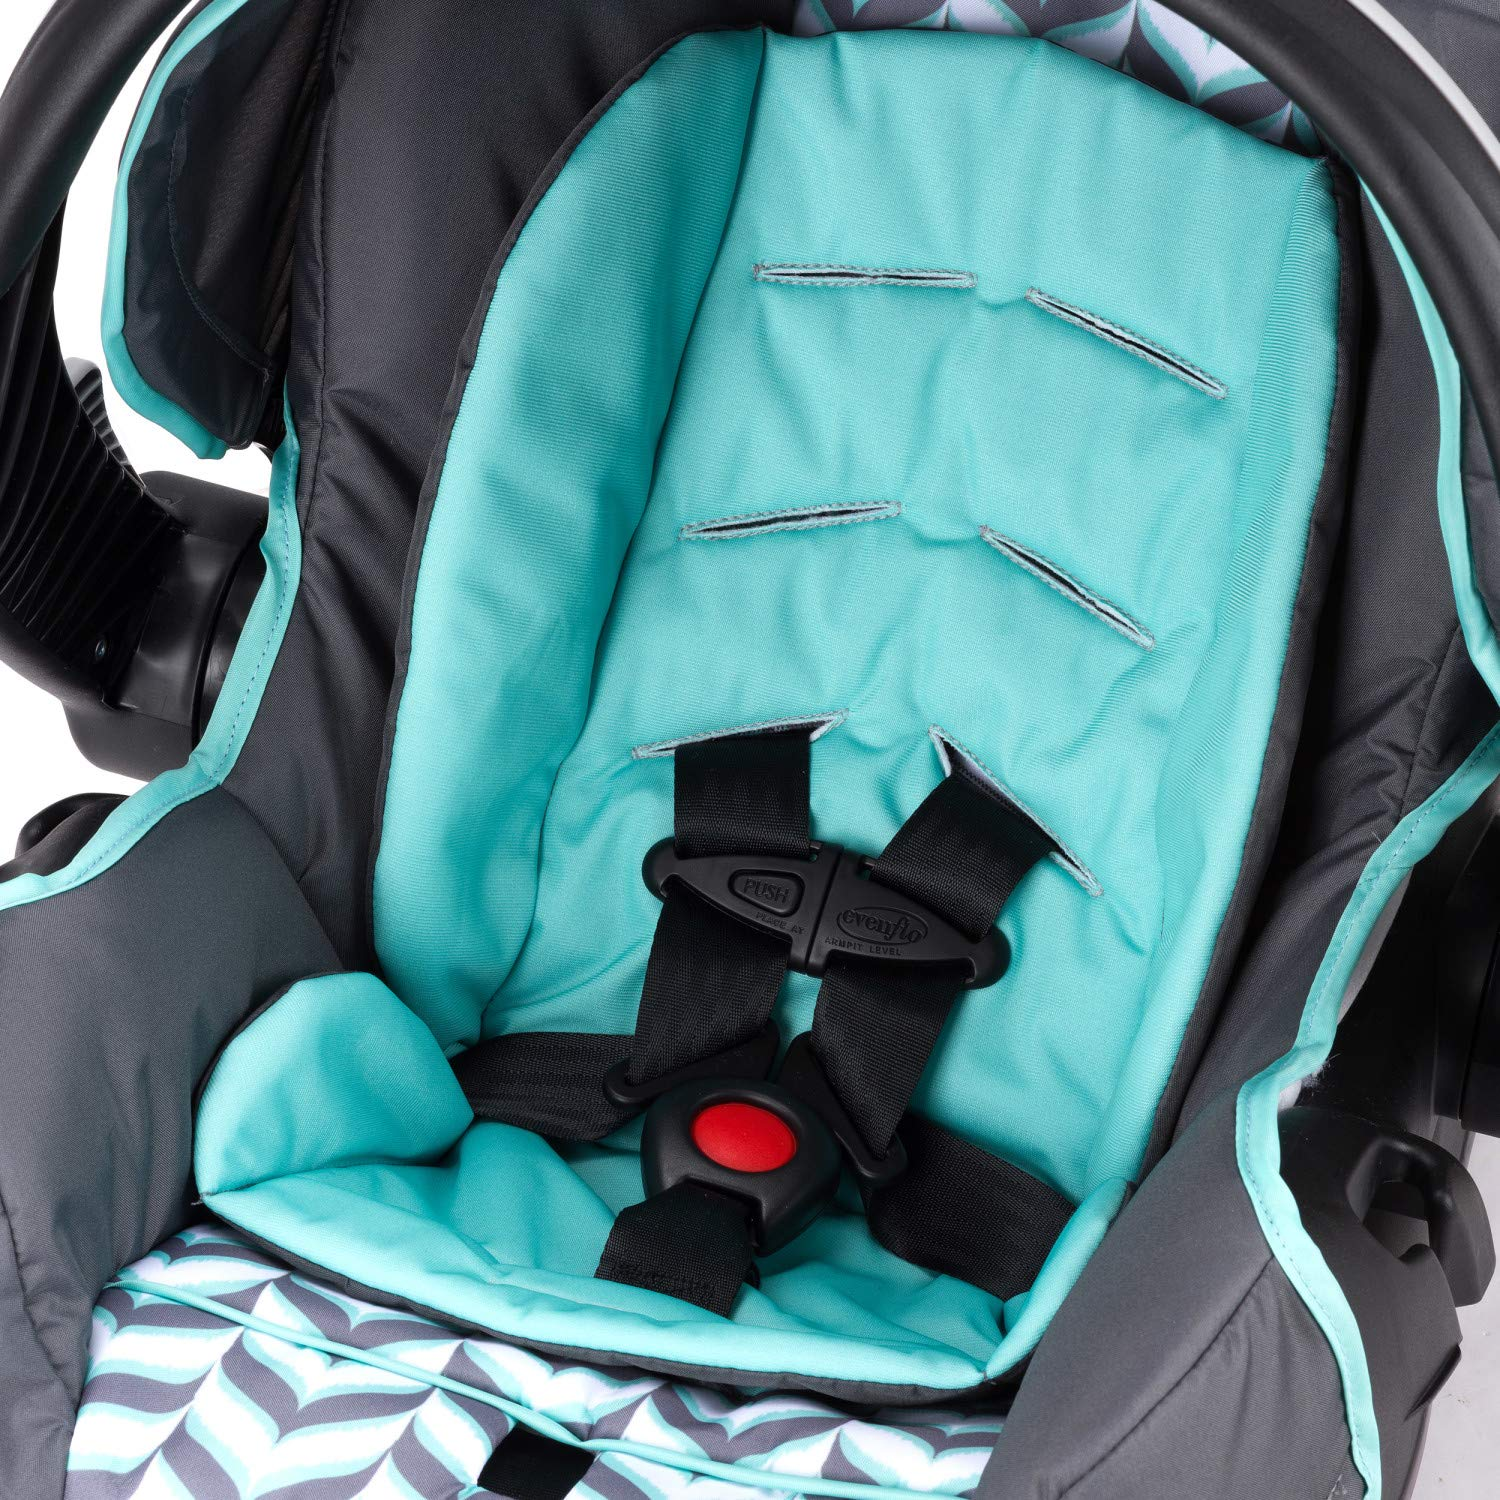 Evenflo Vive Travel System with Embrace Infant Car Seat, Spearmint Spree by Evenflo (Image #4)